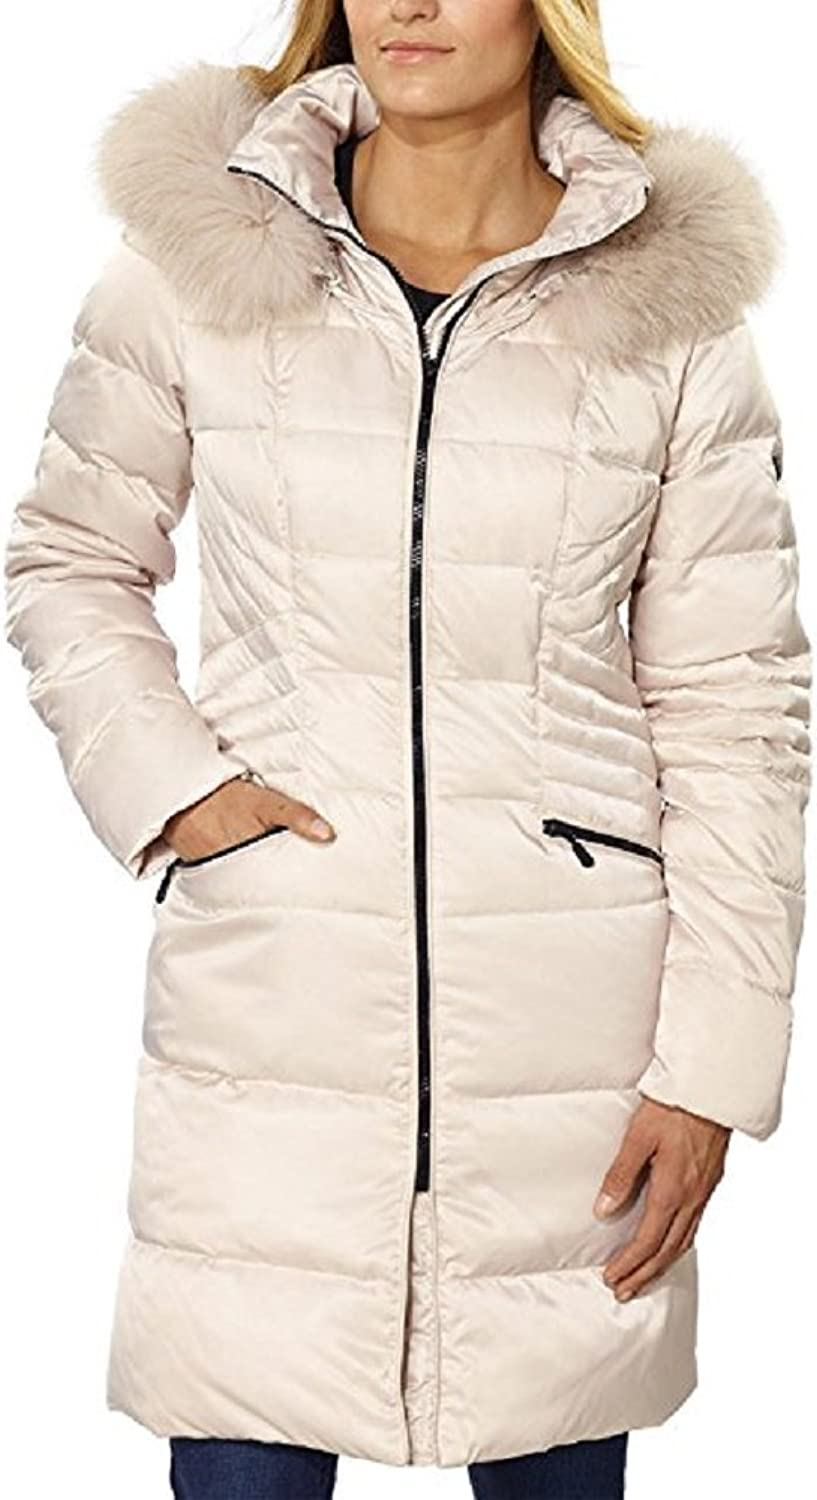 1 Madison Women's Hooded Duck Down Fill Coat,Large, Bone